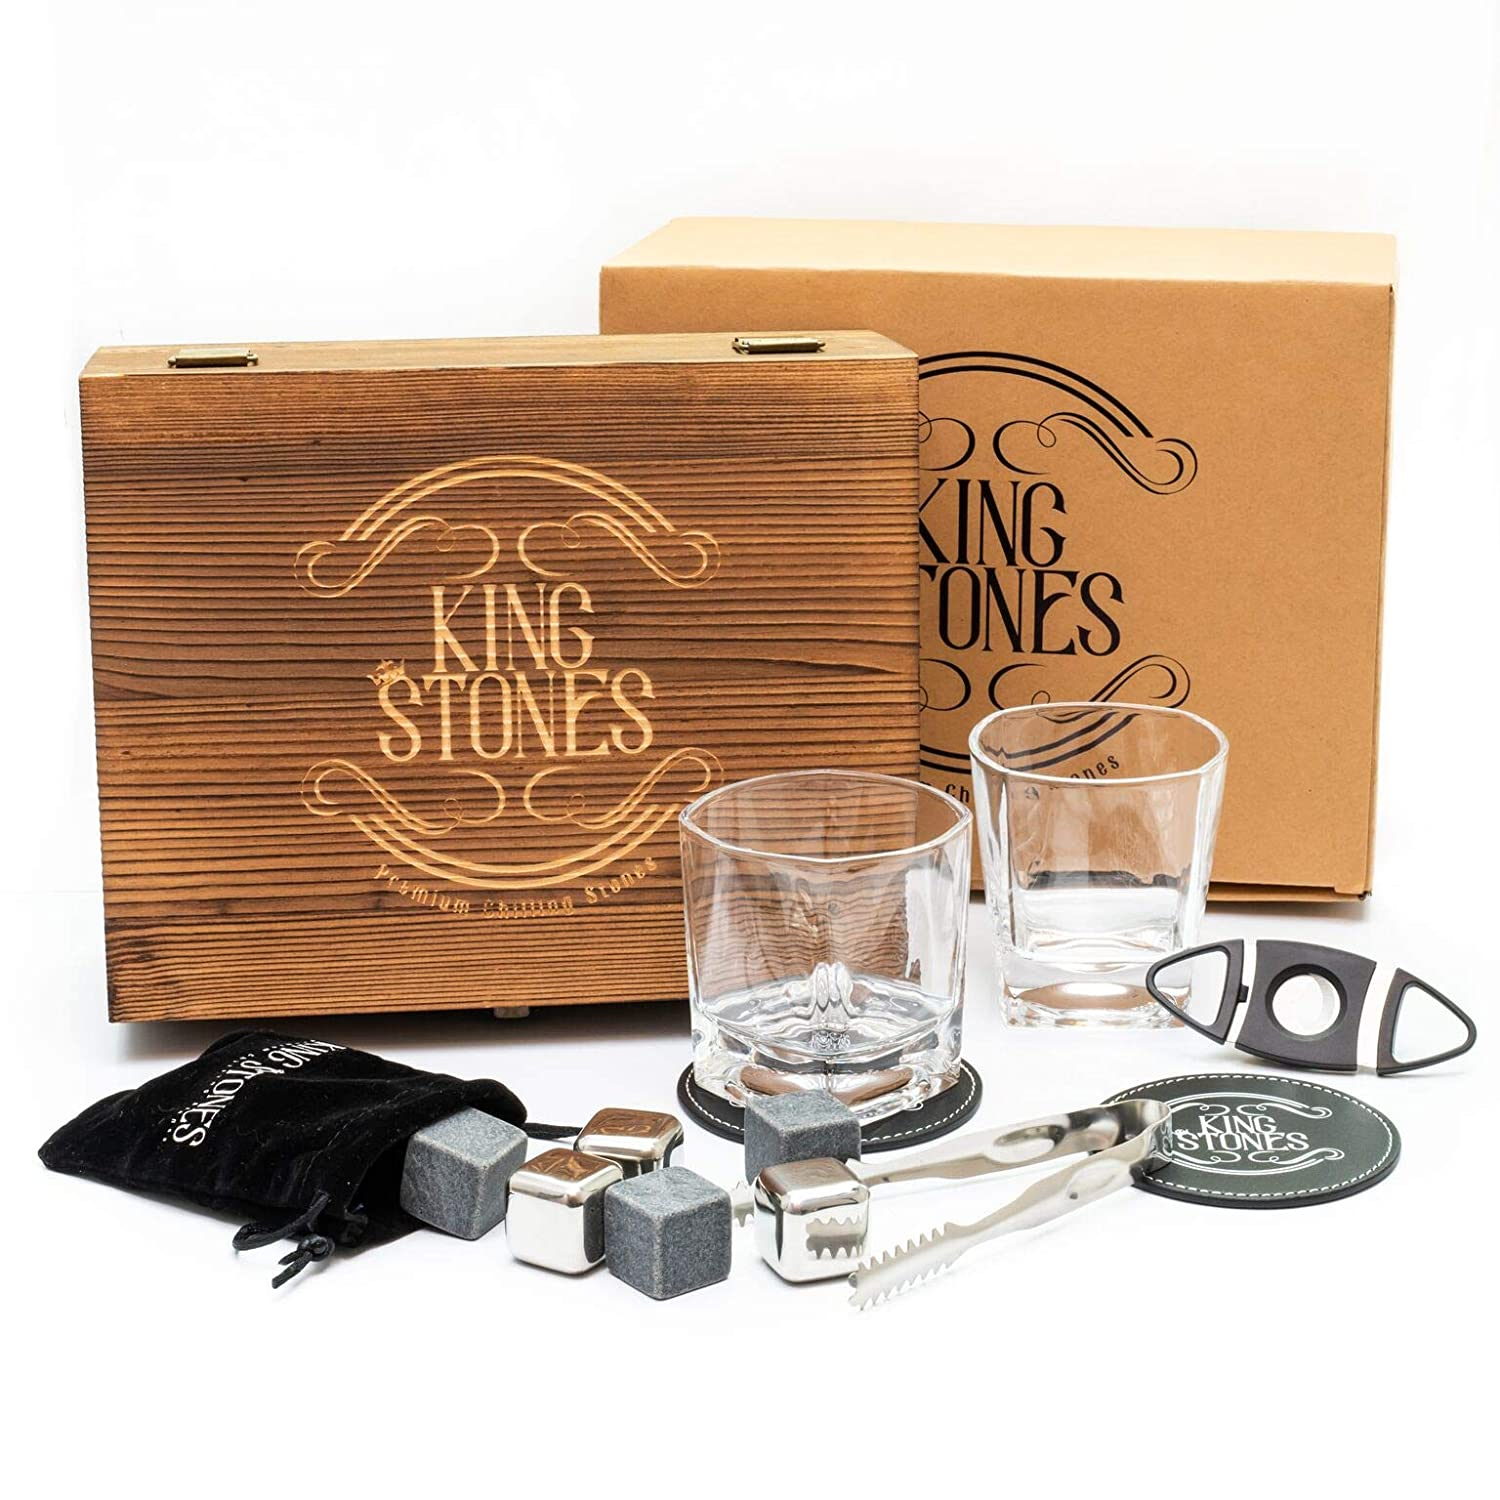 Whiskey Stones Gift Set – Whisky Rocks and Stainless Steel Ice Cubes for Chilling Scotch and Bourbon, Engraved Wooden Case, 2 Large Glasses, Cigar Cutter, 2 Leather Coasters, Tongs and Velvet Bag